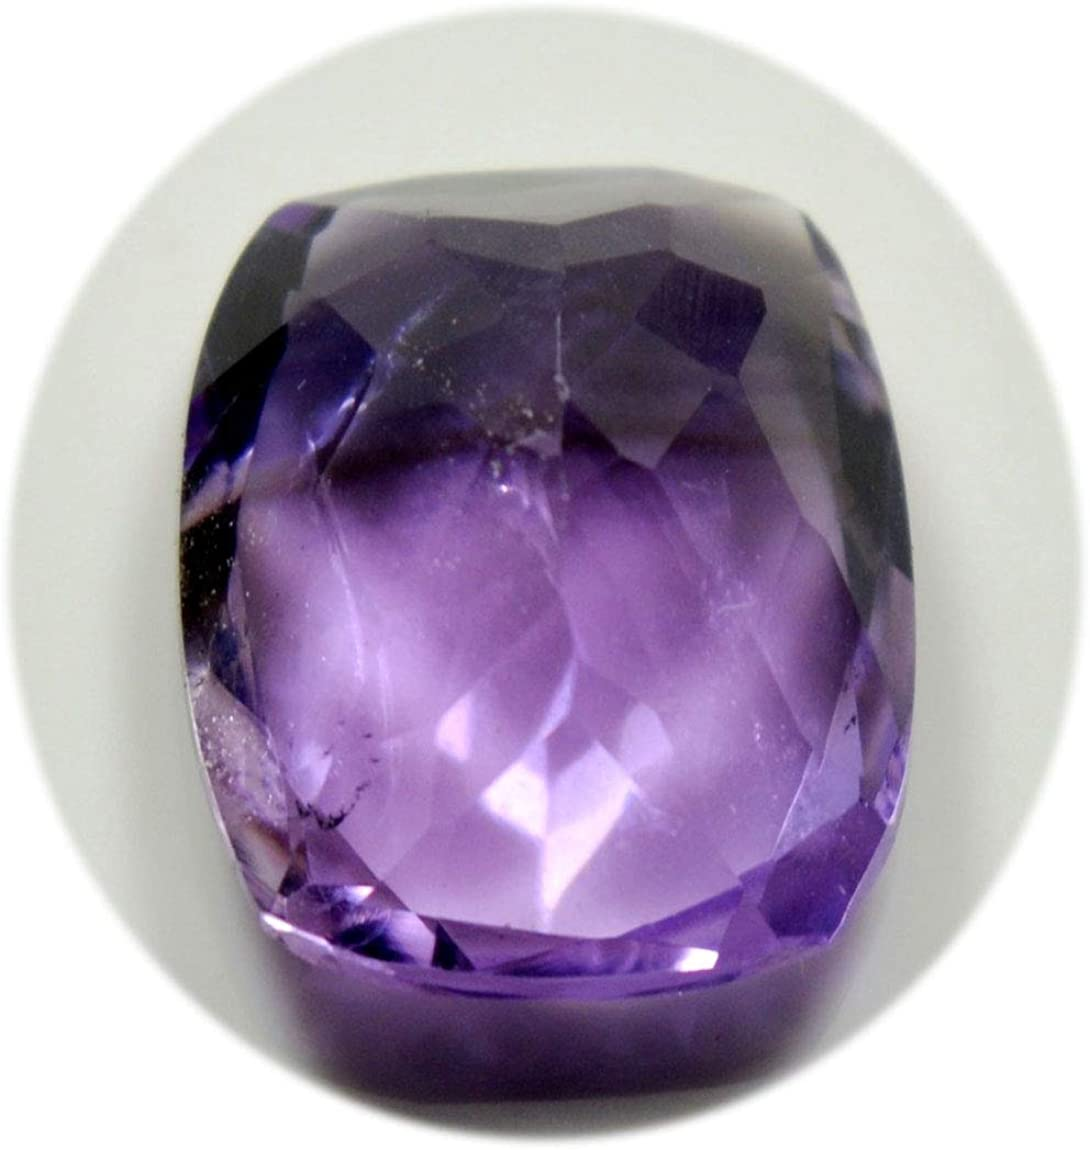 Fabulous Top Grade Quality 100/% Natural Amethyst Fancy Shape Clocter Loose Gemstone For Making Jewelry 35.5 Ct 39X13X6 mm J-4674